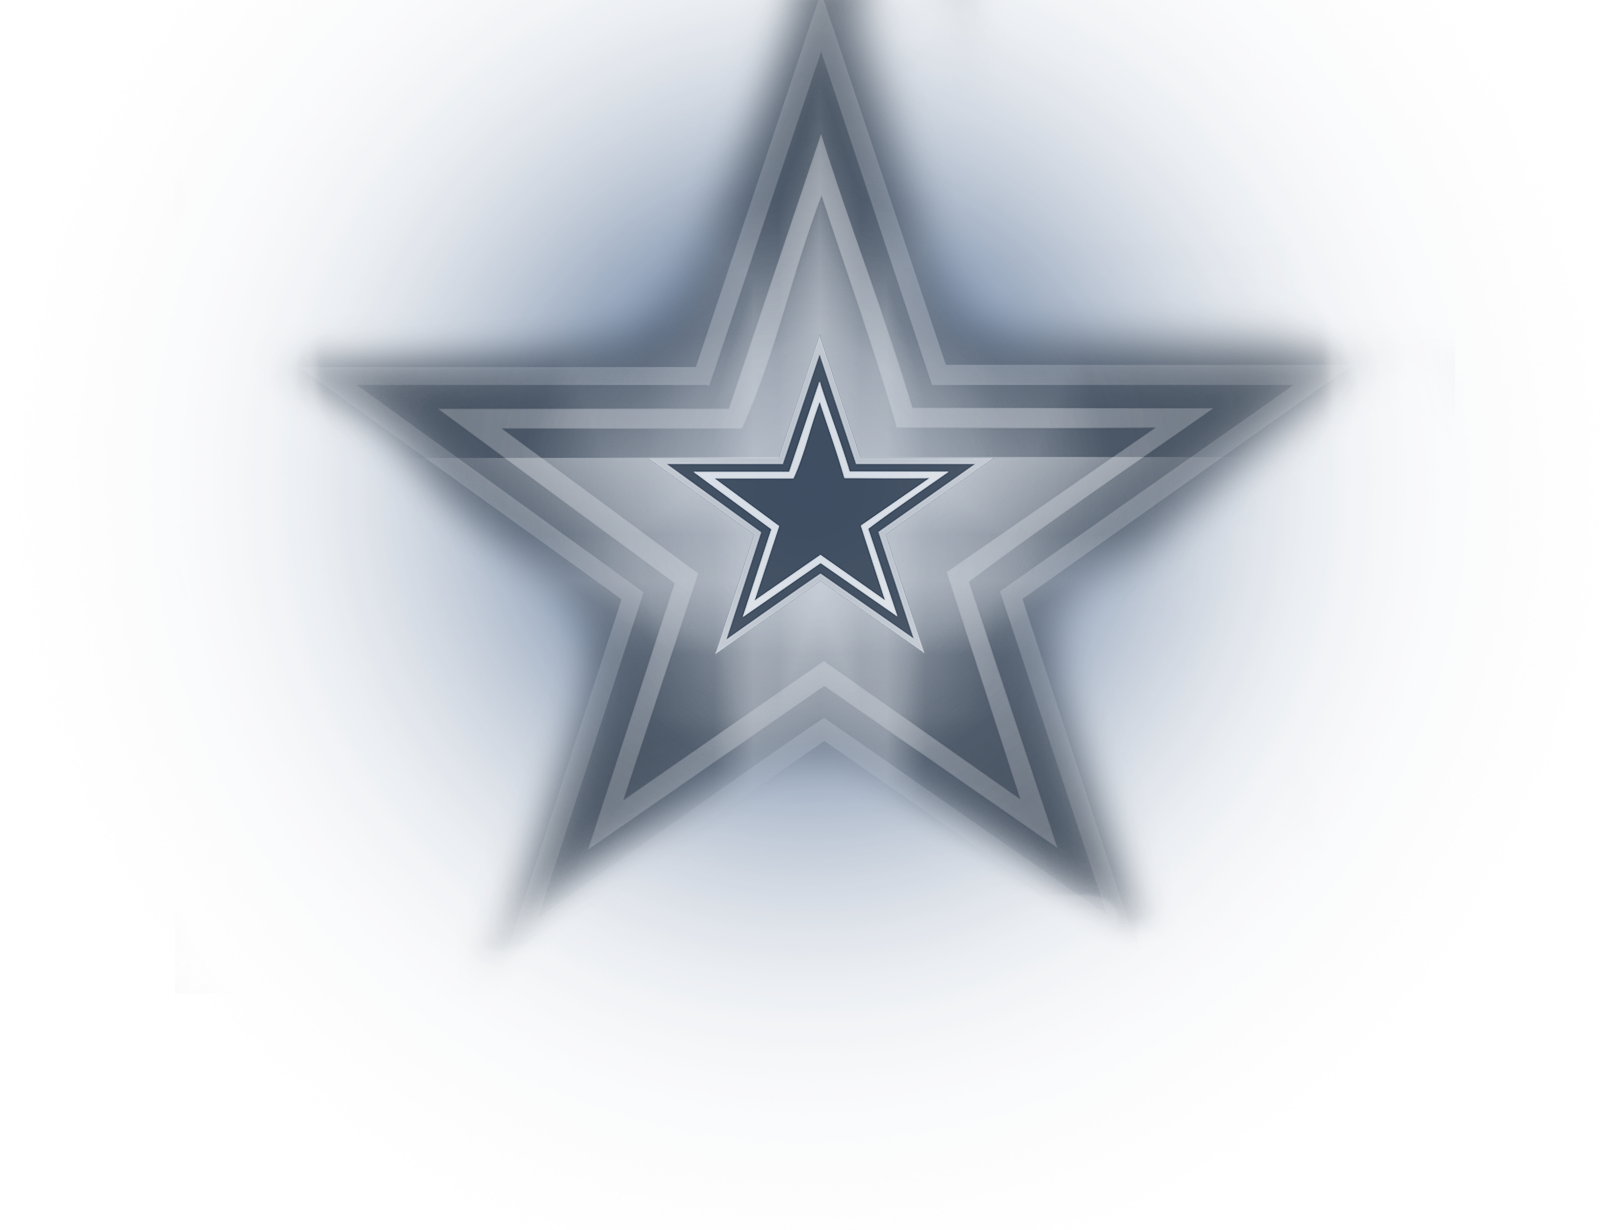 Dallas Cowboys Star Png - Dallas Cowboys Star Png - Clip Art Library